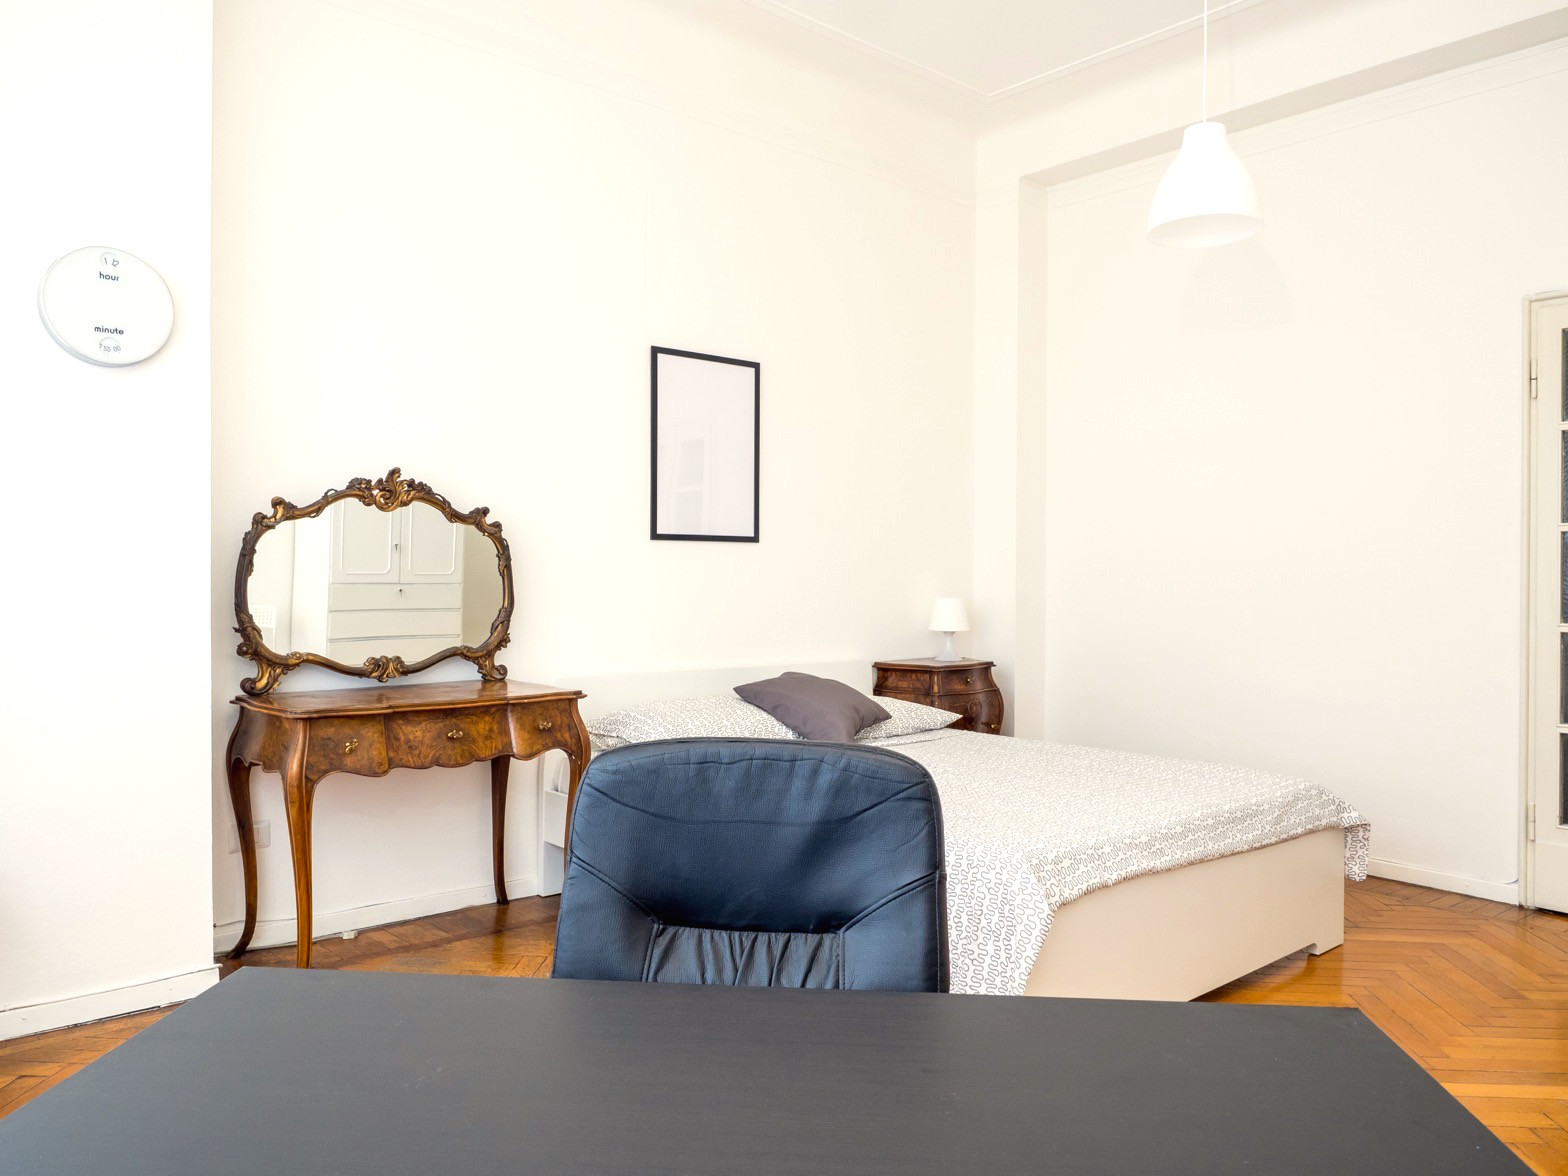 Milano Bedroom Furniture Large And Beautiful Bedrooms In The Heart Of Milano Room For